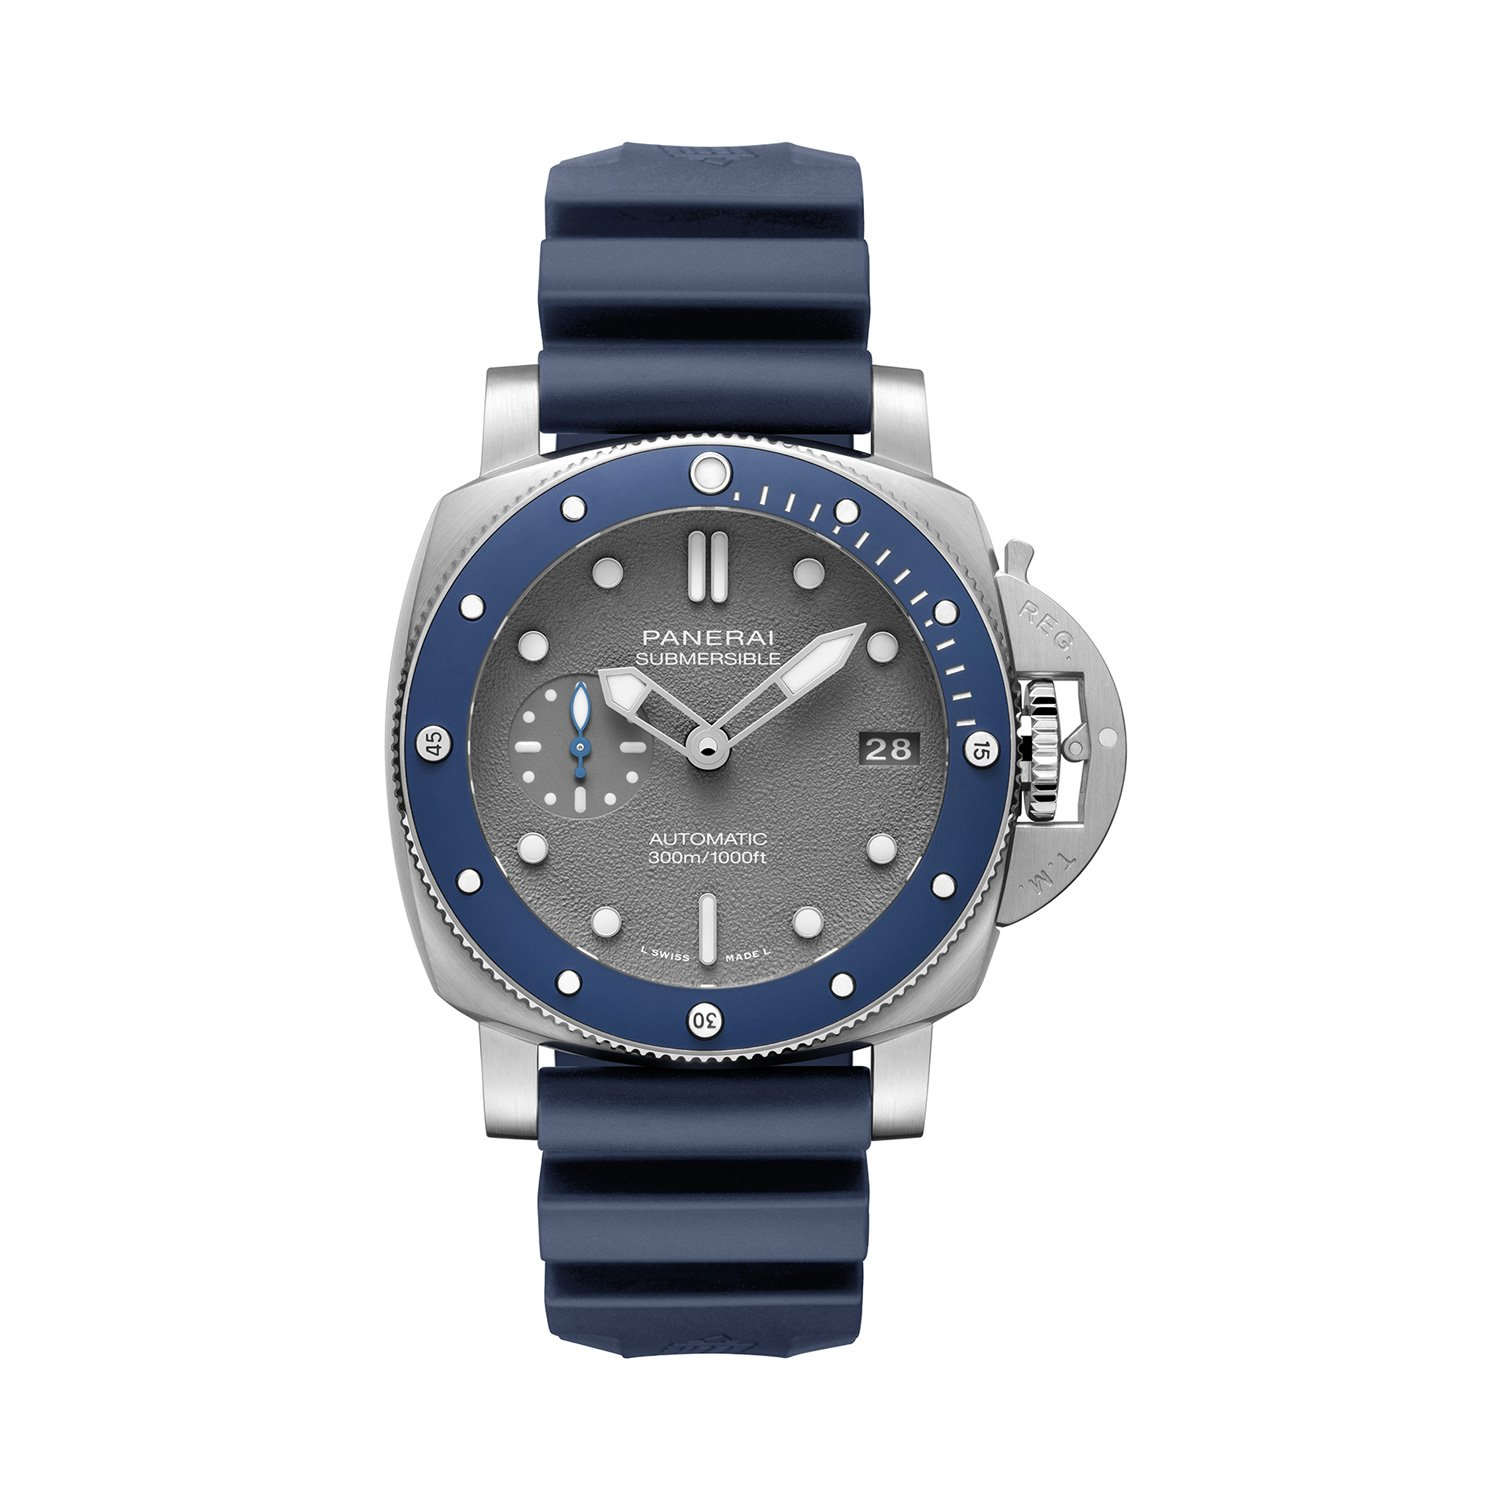 Montre Panerai Submersible – 42mm vue 1